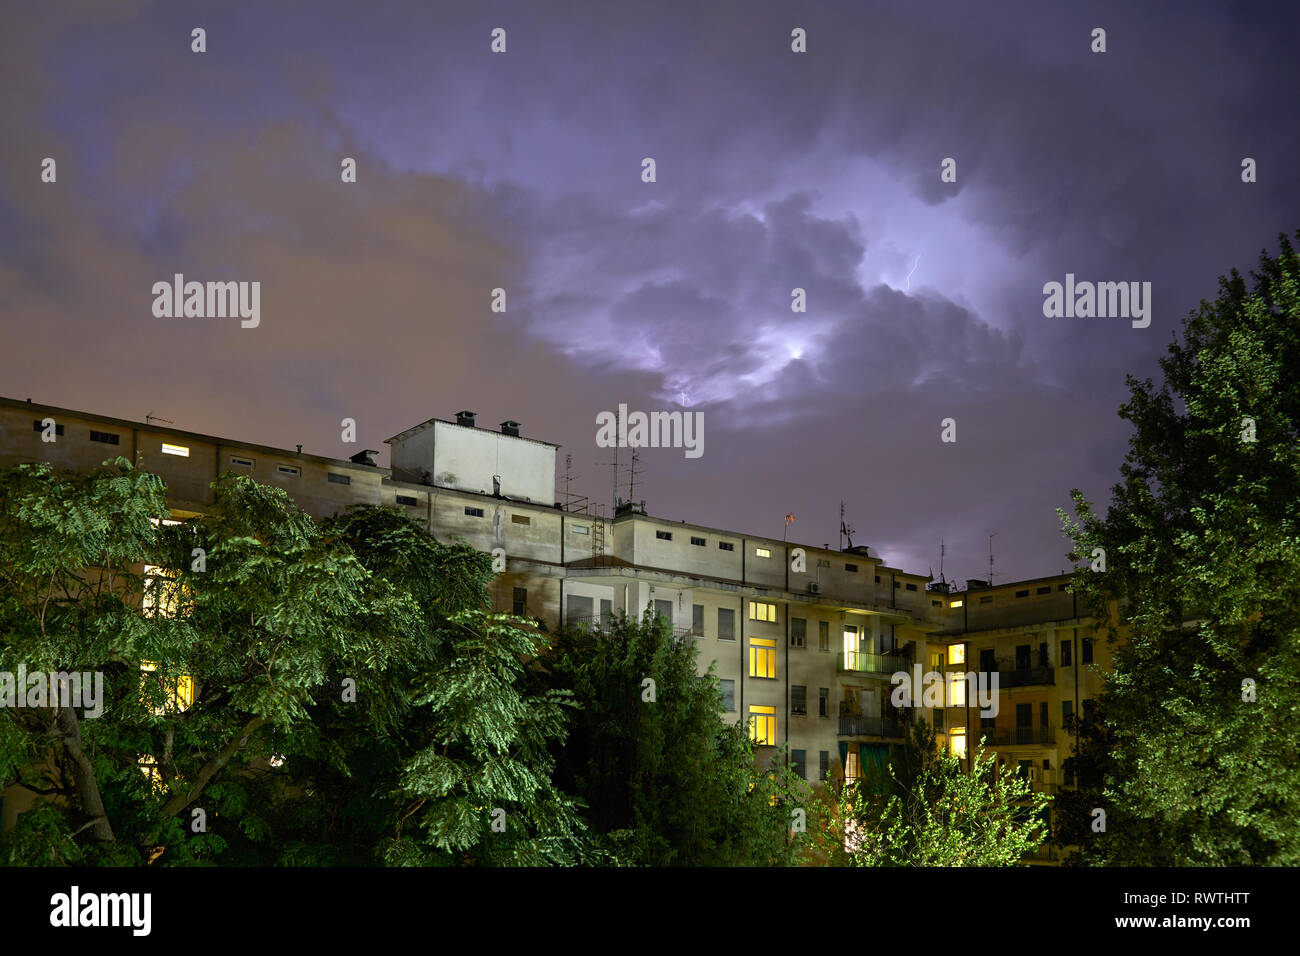 Buildings and green trees at night, illuminated sky during a lightning storm in Italy Stock Photo